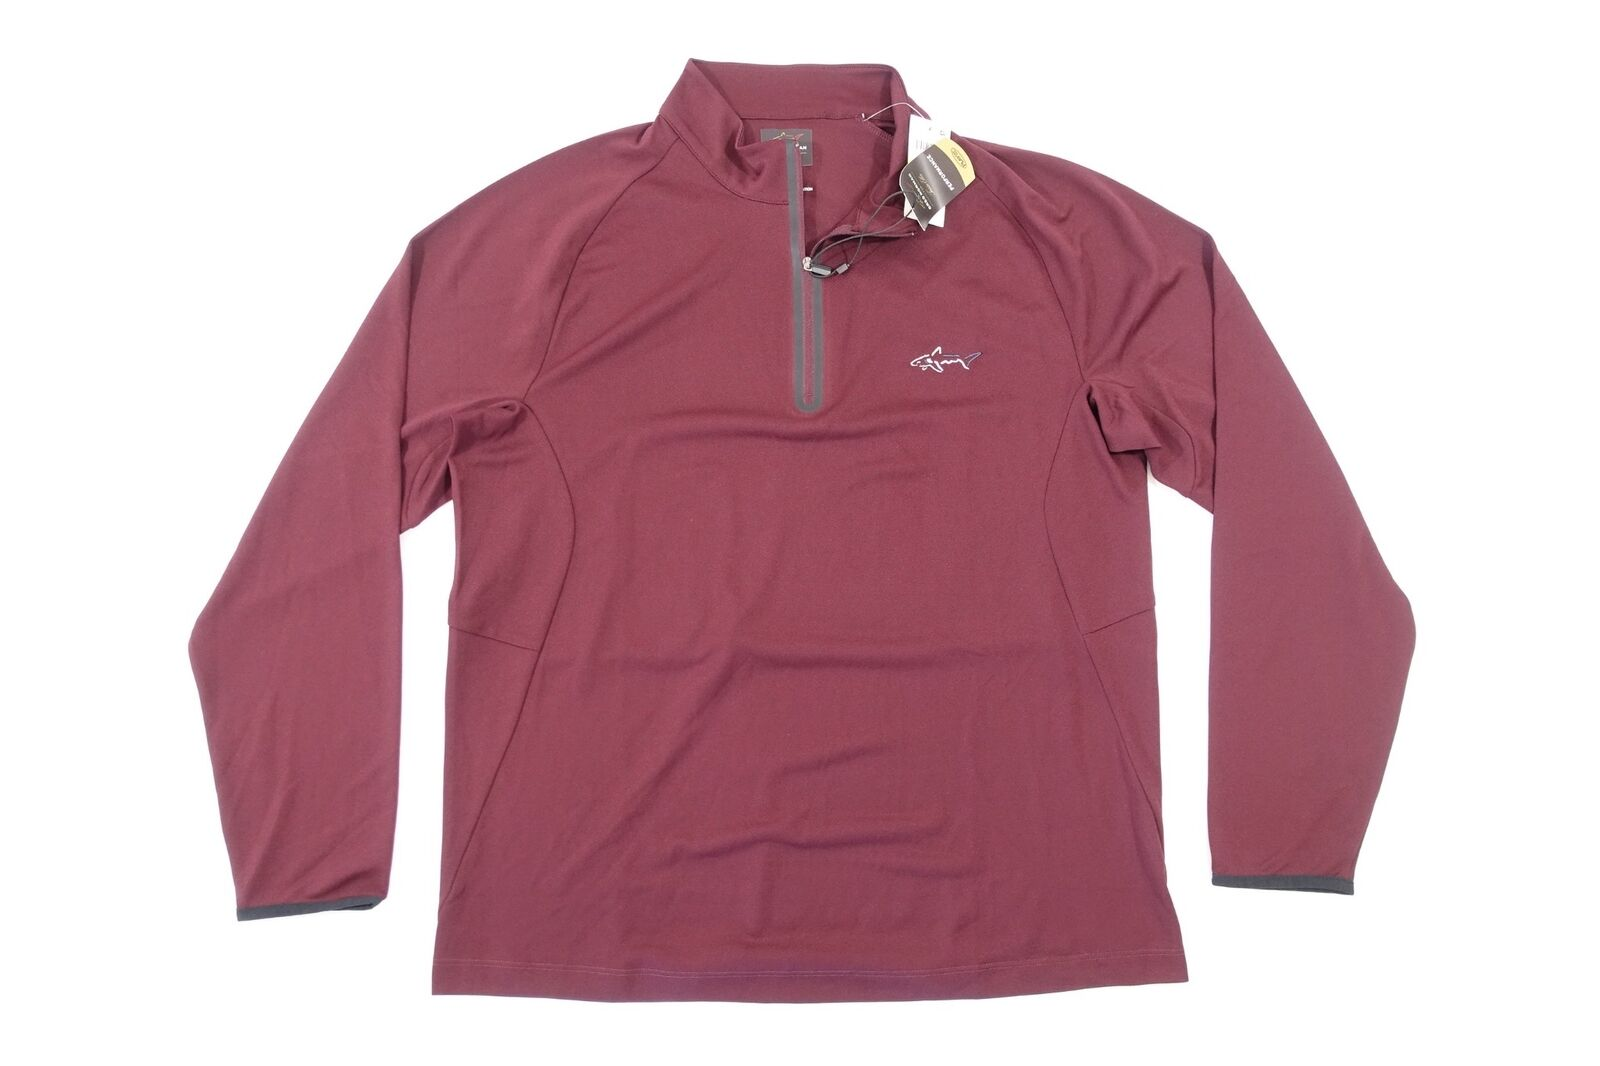 TASSO ELBA GREG NORMAN RED PORT SMALL PLAY DRY HALF ZIP PERFORMANCE SWEATER NWT